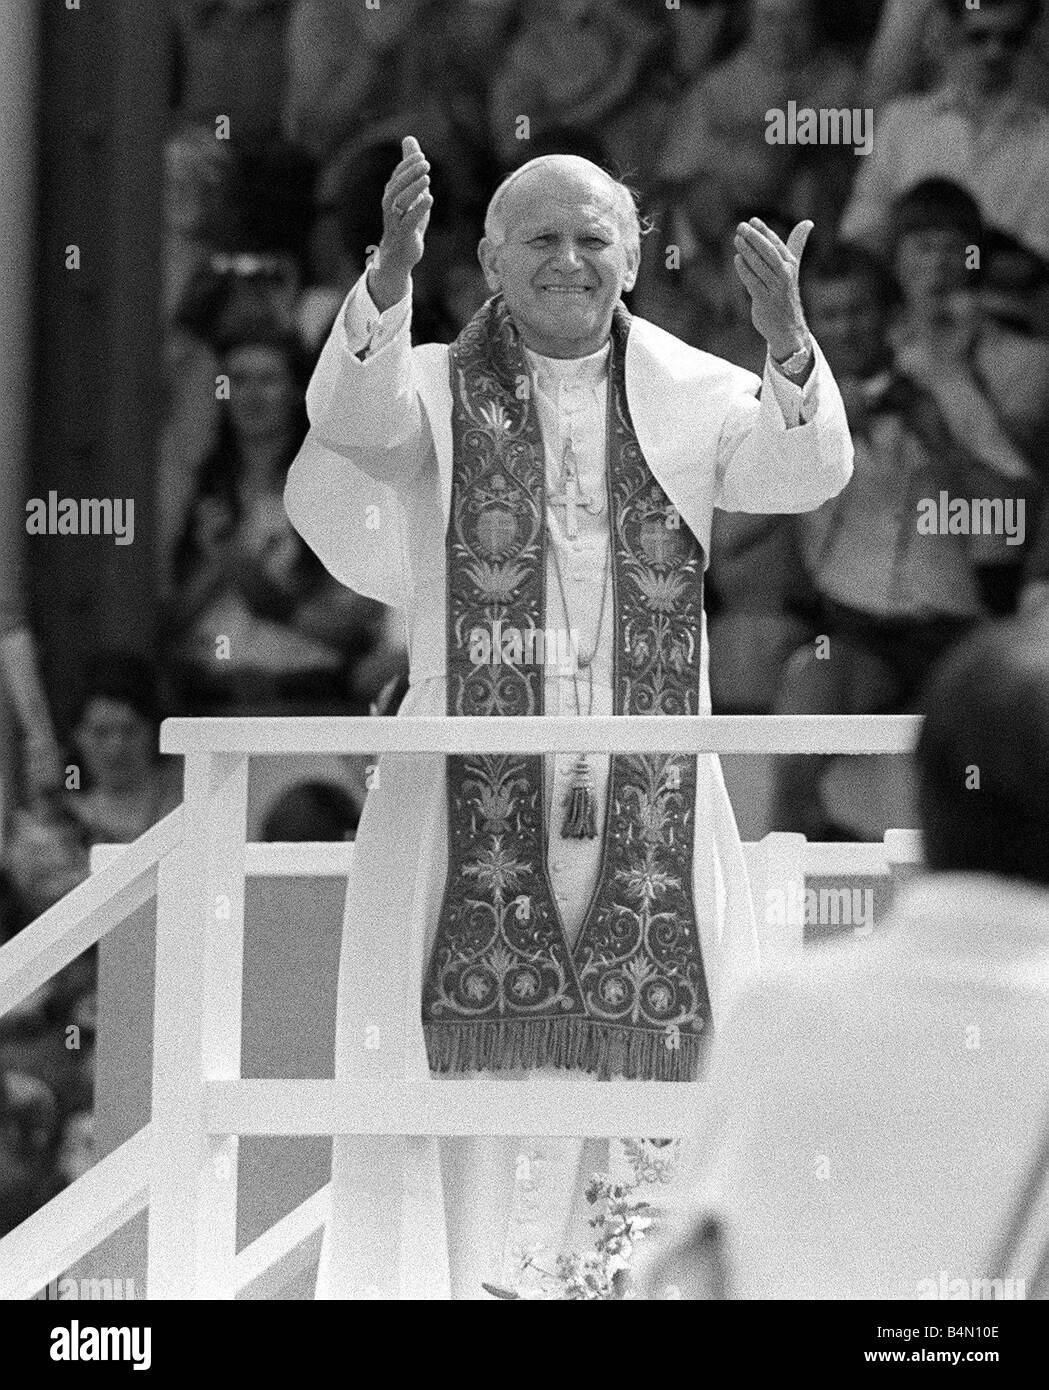 Pope John Paul II blesses the crowd during his visit to Cardiff Stock Photo